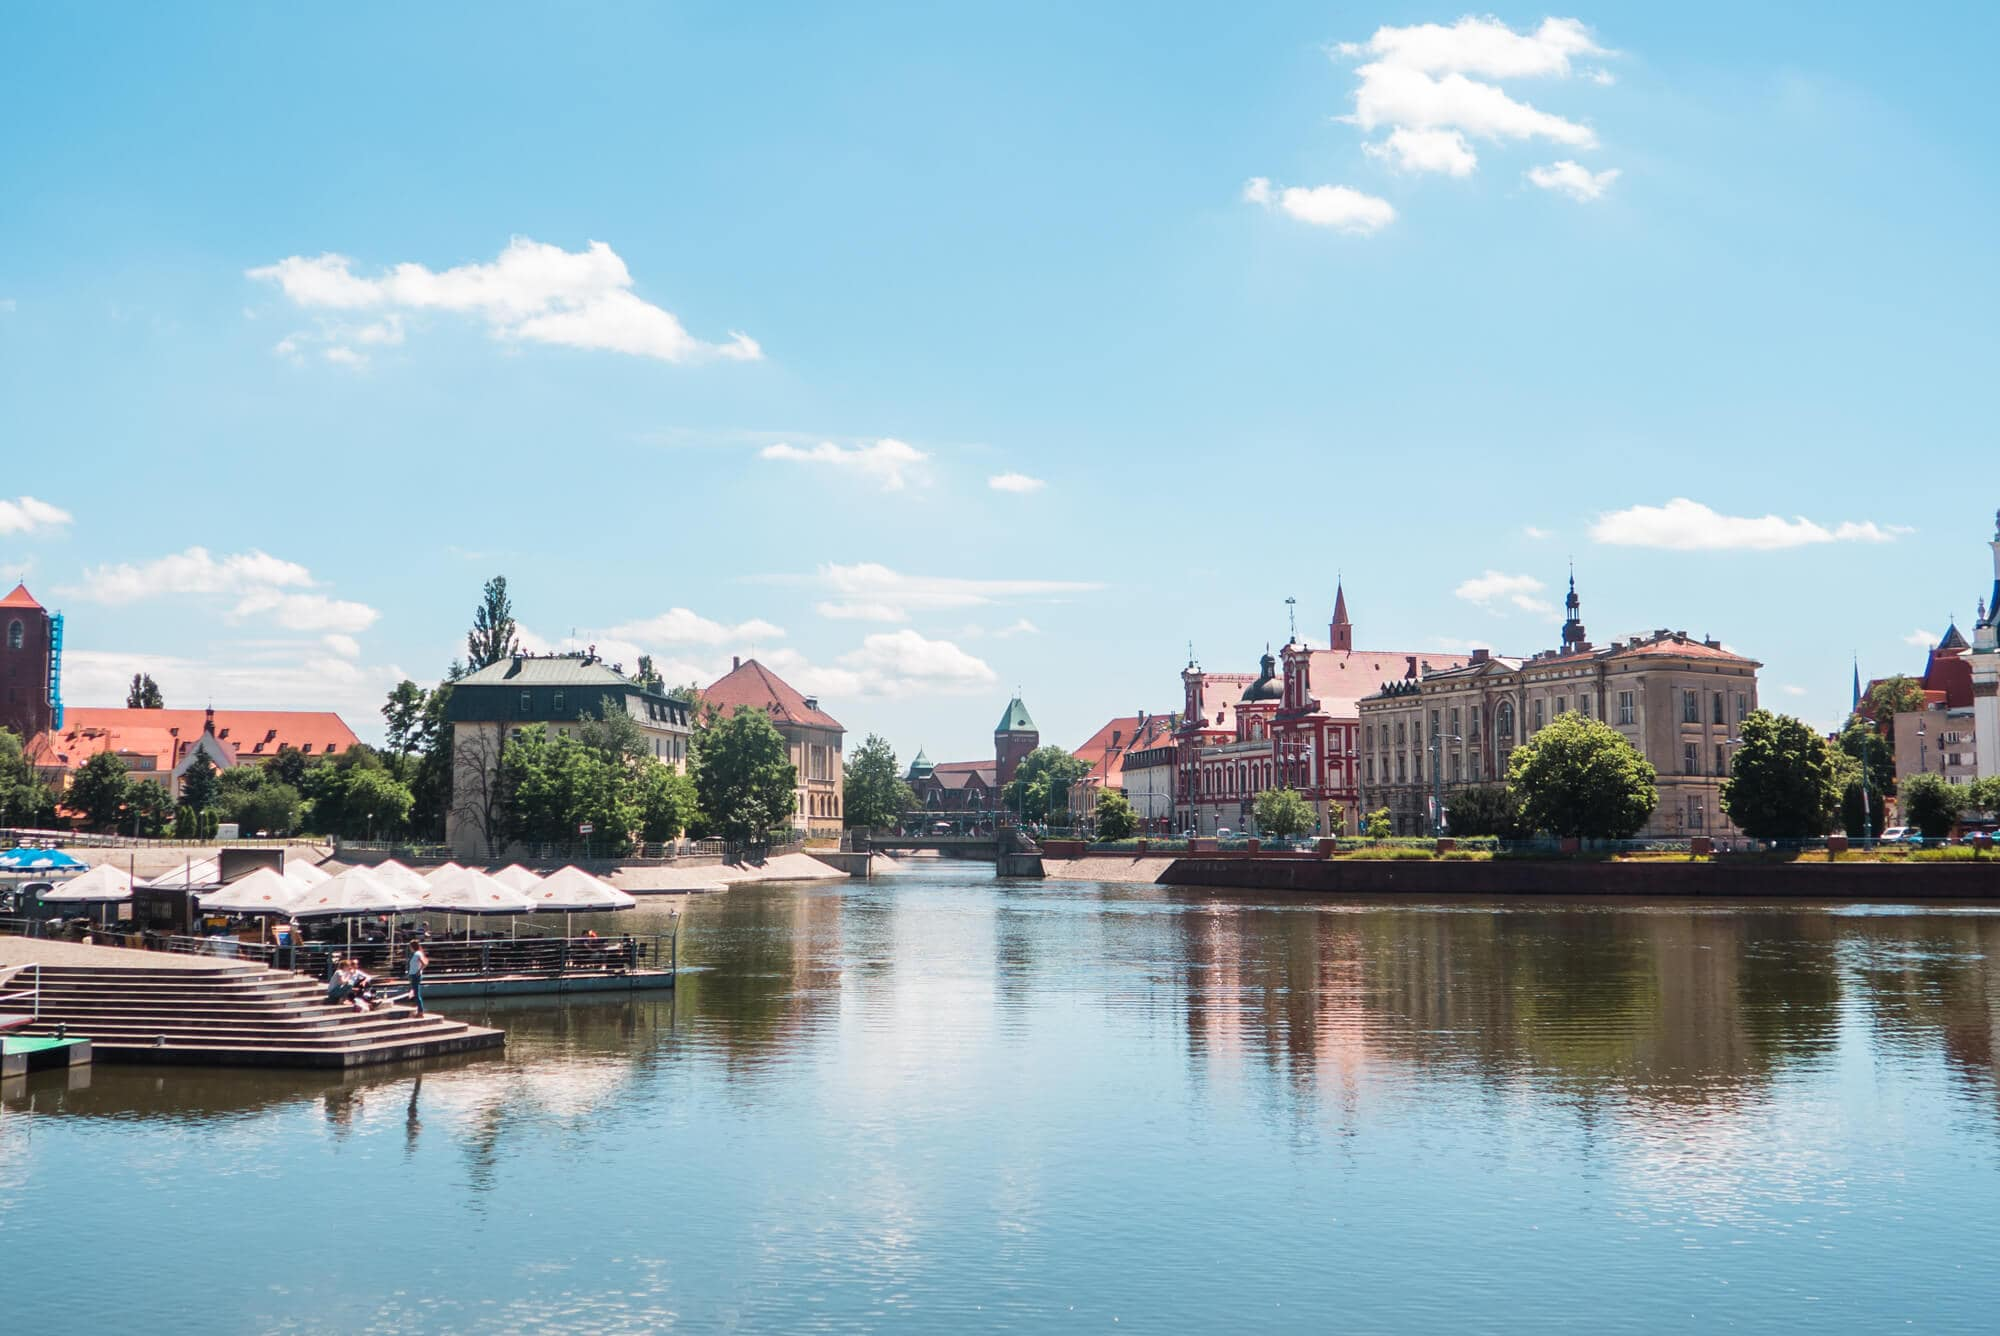 Wroclaw, Poland - One of the most underrated cities in the world + why you should add it to your bucket list low!